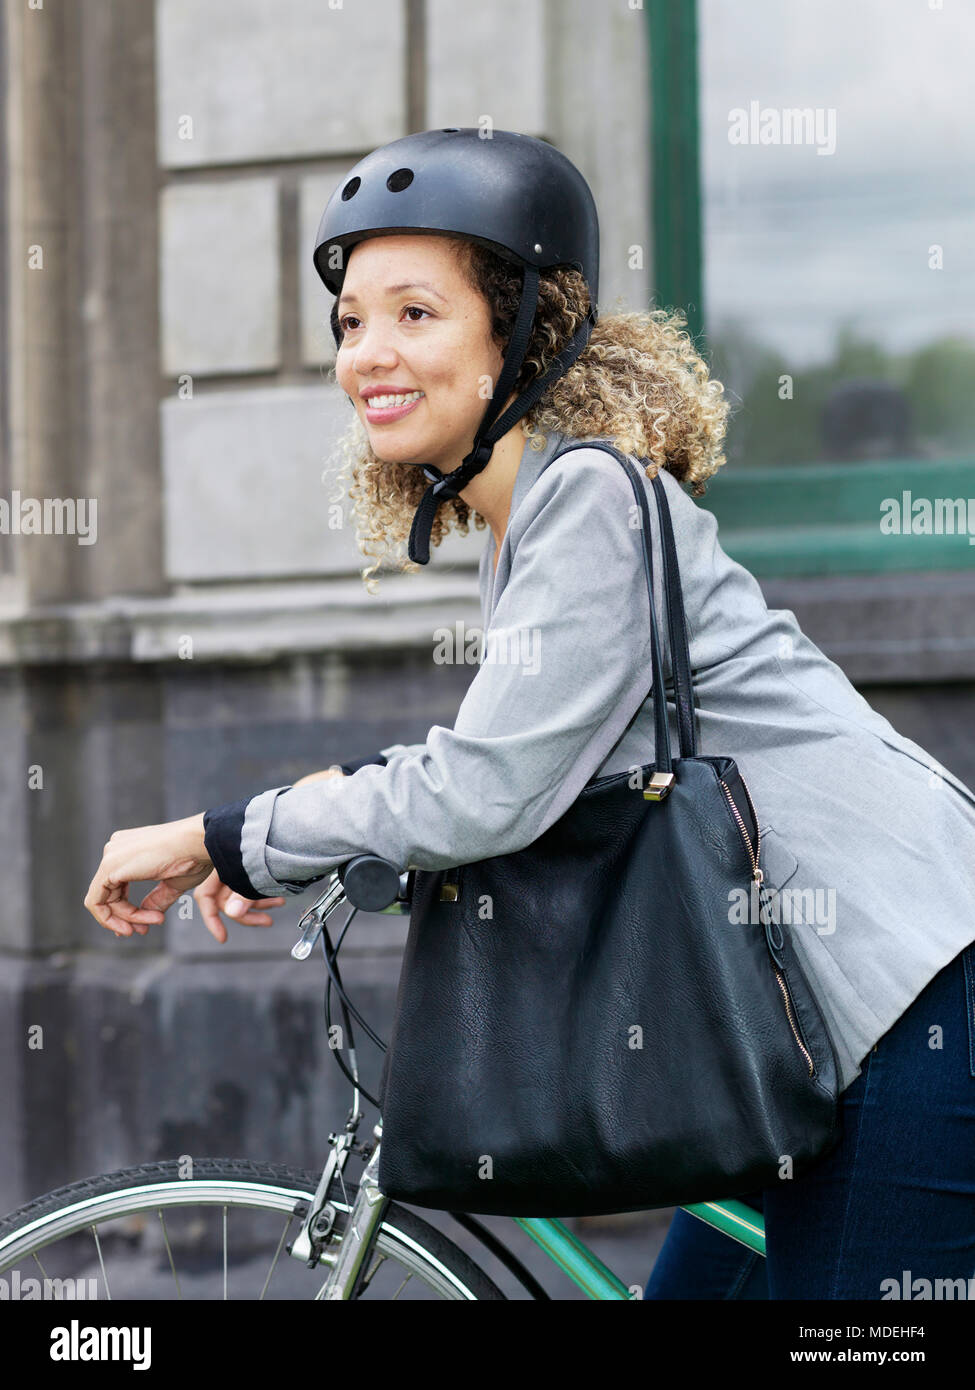 Mid Adult Woman Sitting On Bicycle Wearing Safety Helmet Stock Image